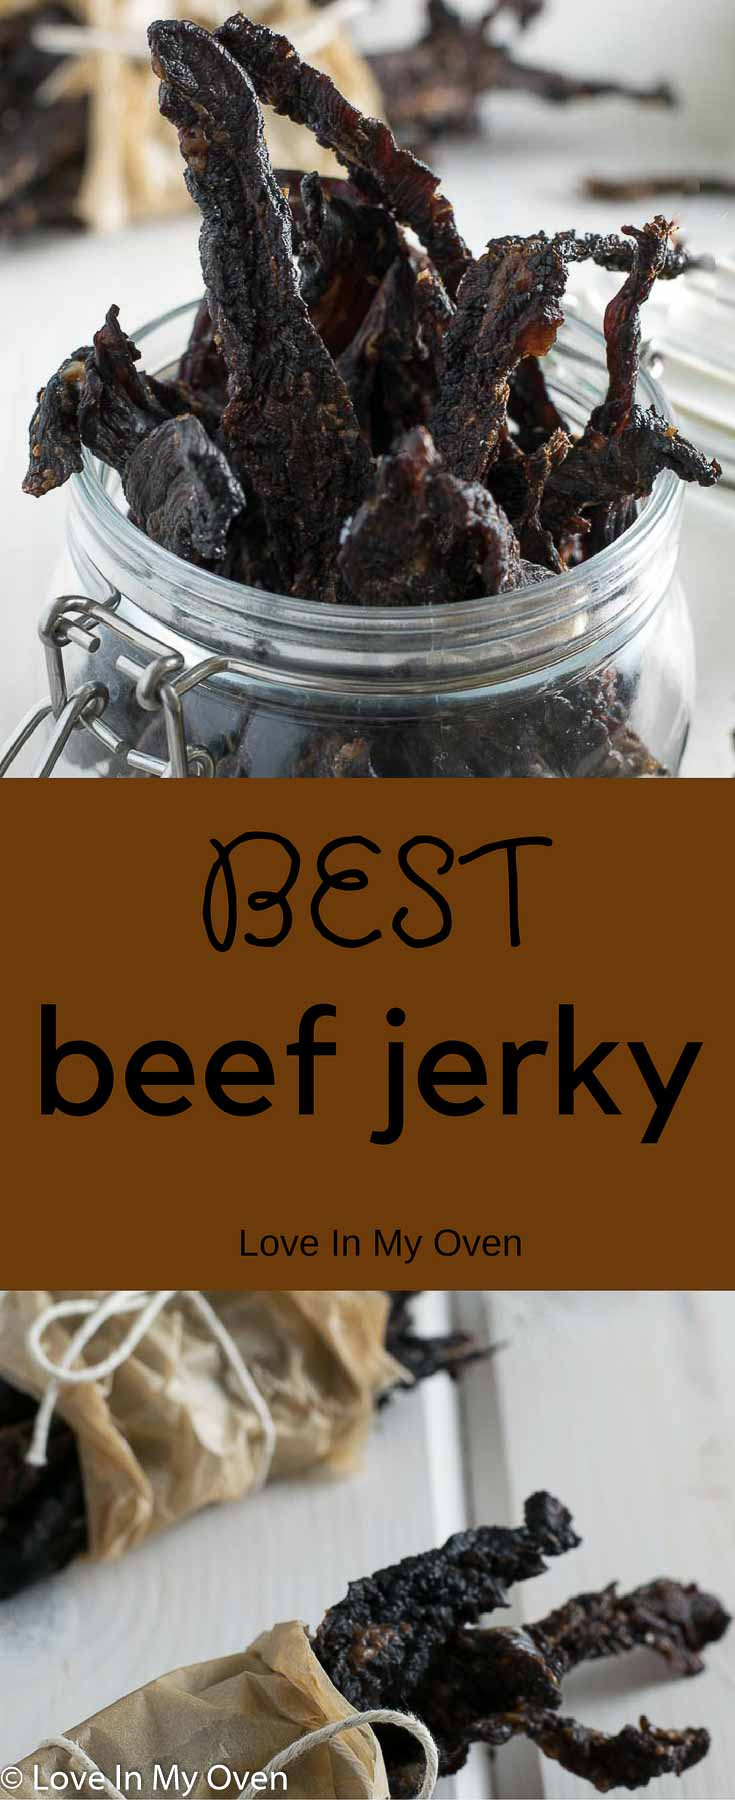 beef jerky, on the side, snacks, dehydrator, beef, make your own, soya sauce